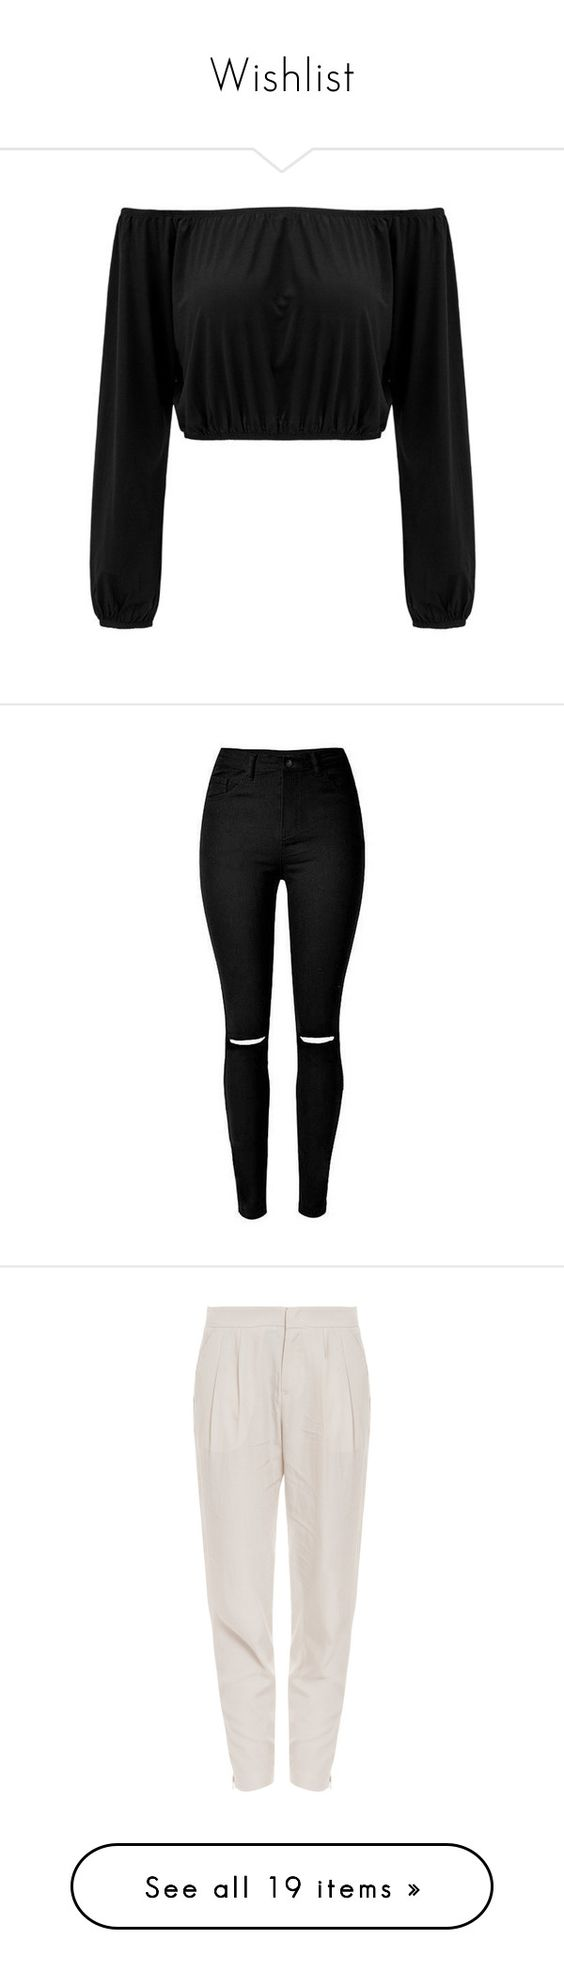 """""""Wishlist"""" by kamication ❤ liked on Polyvore featuring tops, shirts, crop tops, black, crop top, off the shoulder shirts, long sleeve crop top, sexy shirts, long sleeve shirts and jeans"""